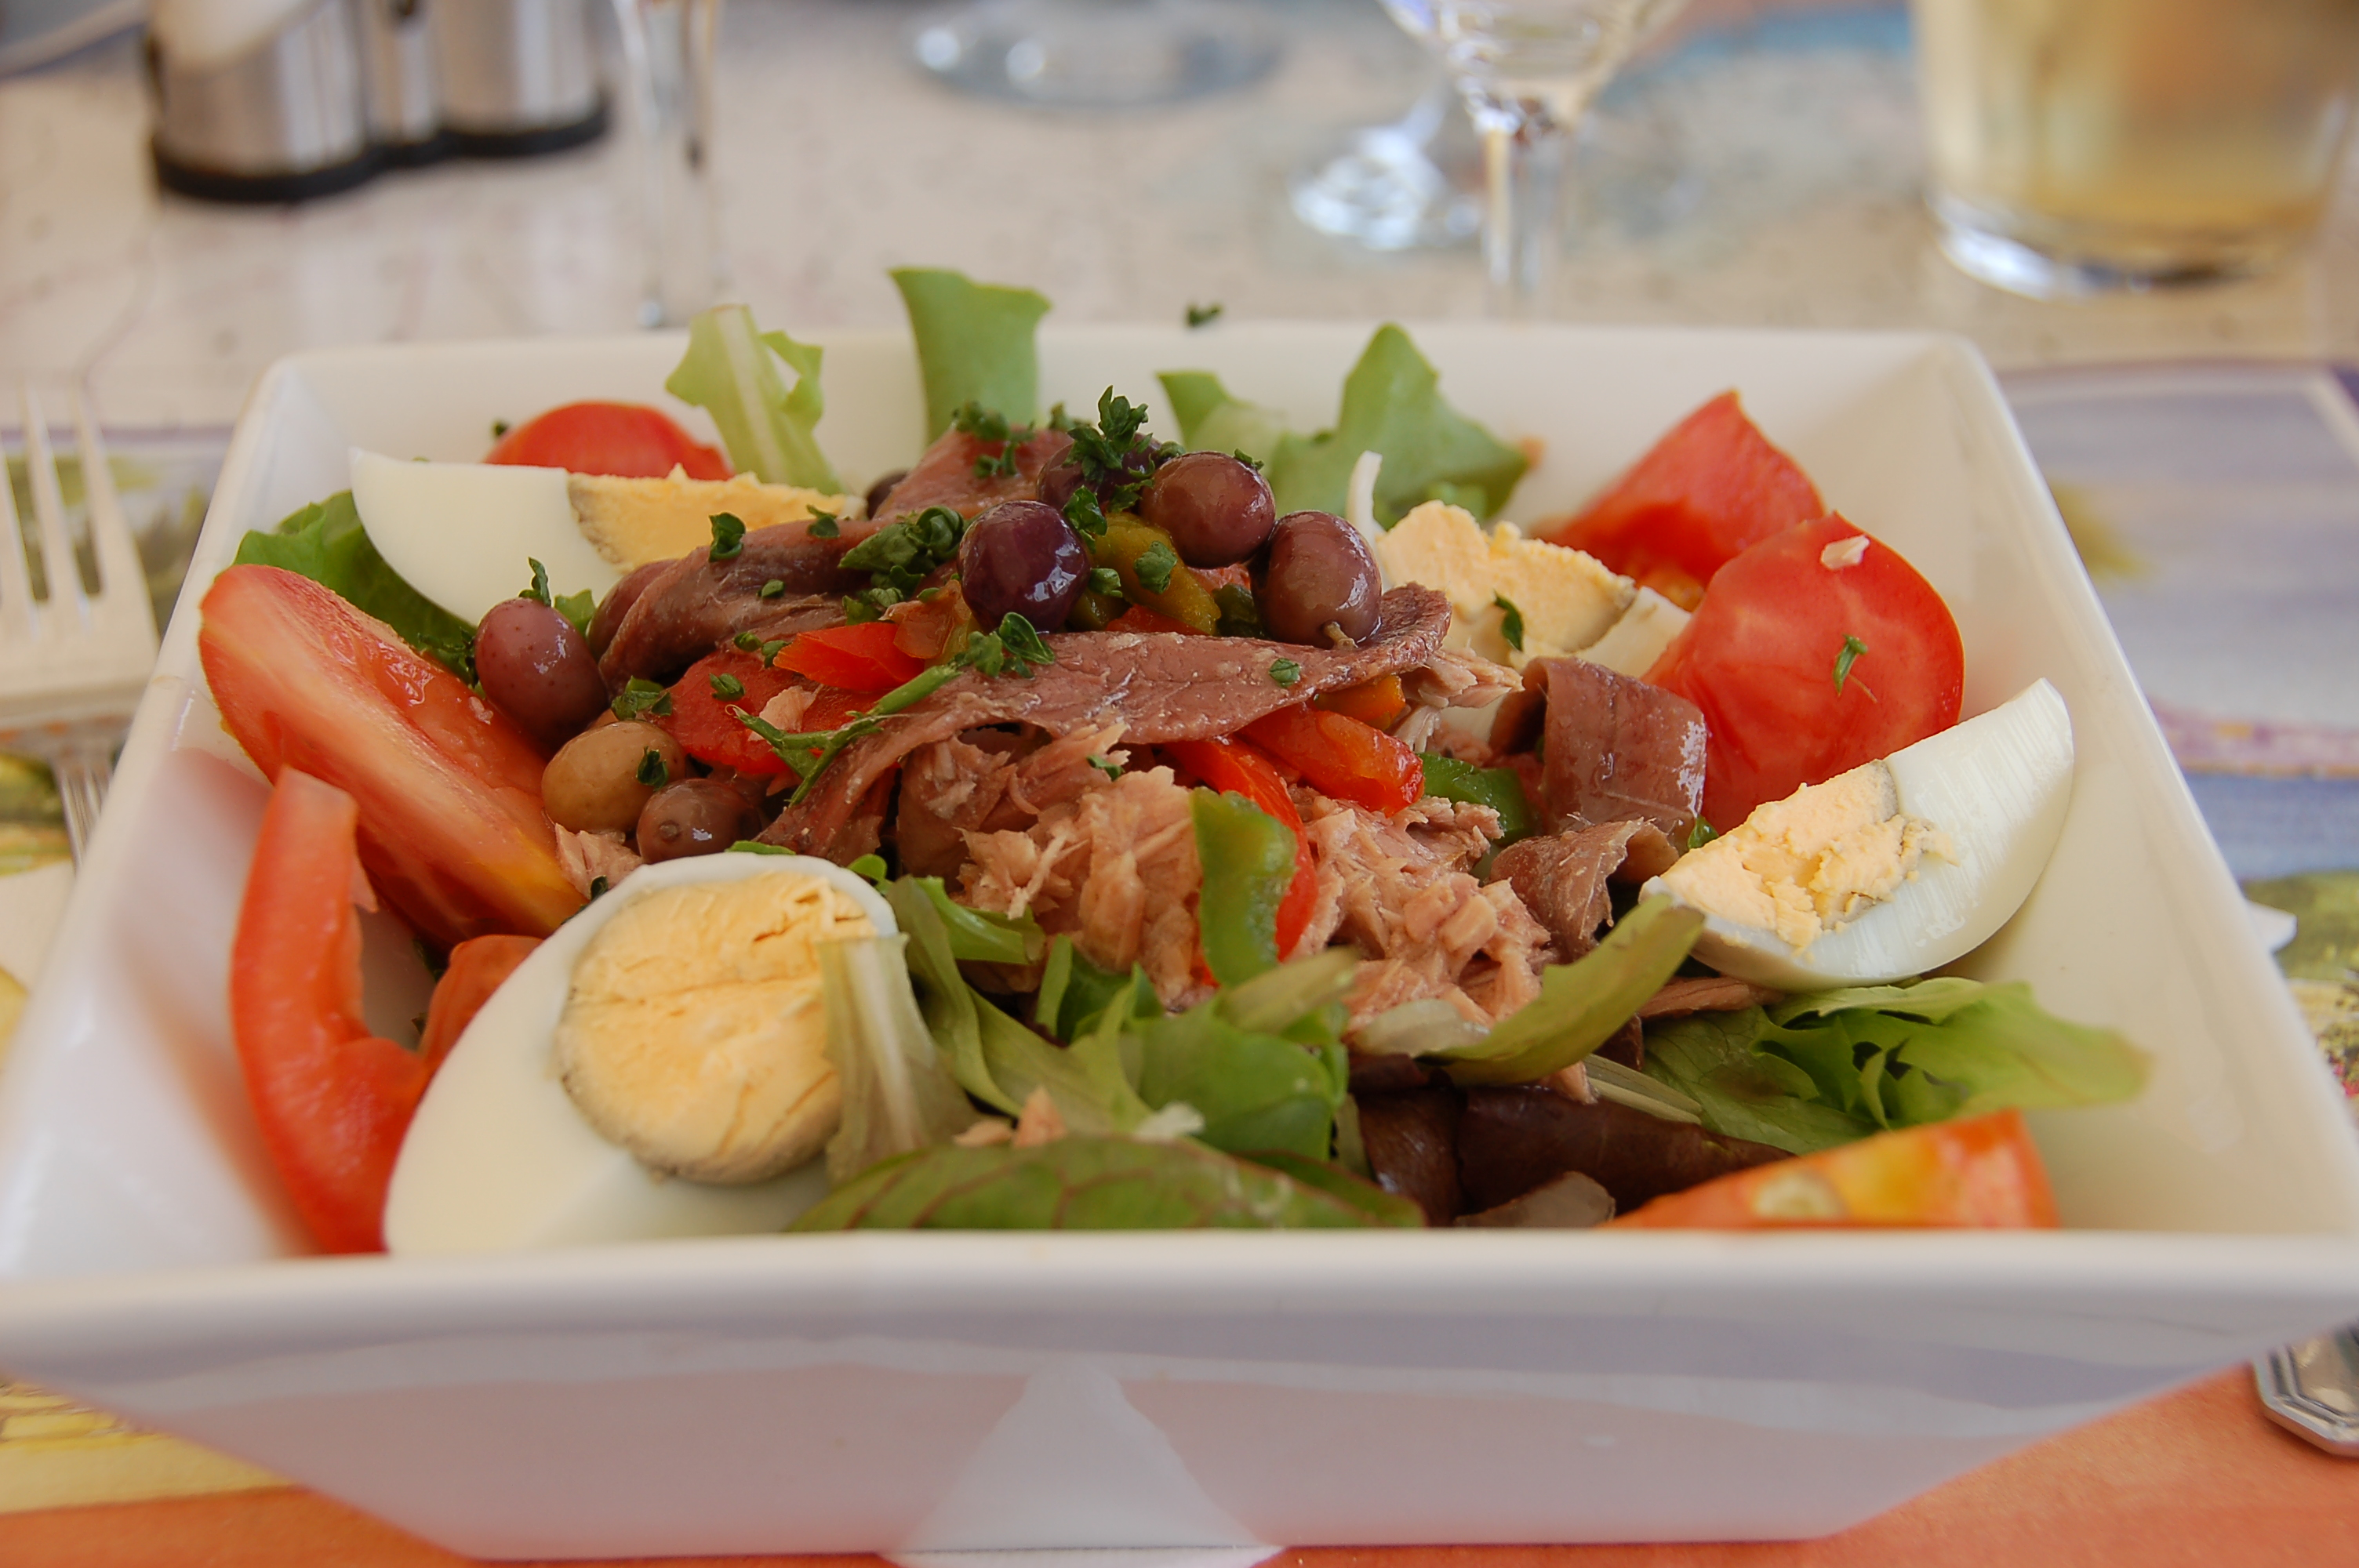 Plate of salad